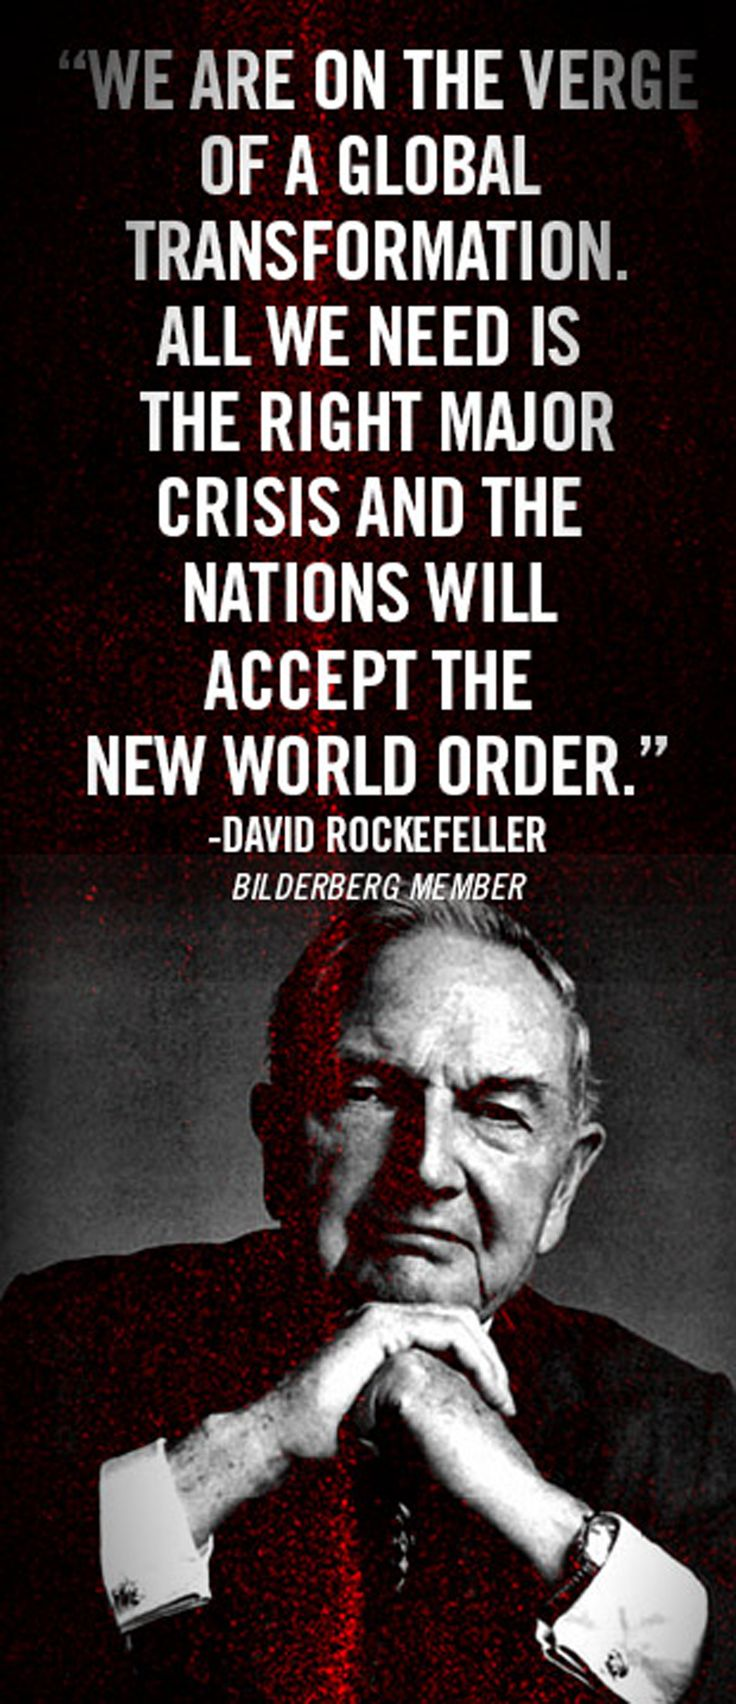 These satanic elites with their satanic cult, Illuminate, will do it soon - The New World Order is underway...WAKE THE HECK UP PEOPLE!!!!